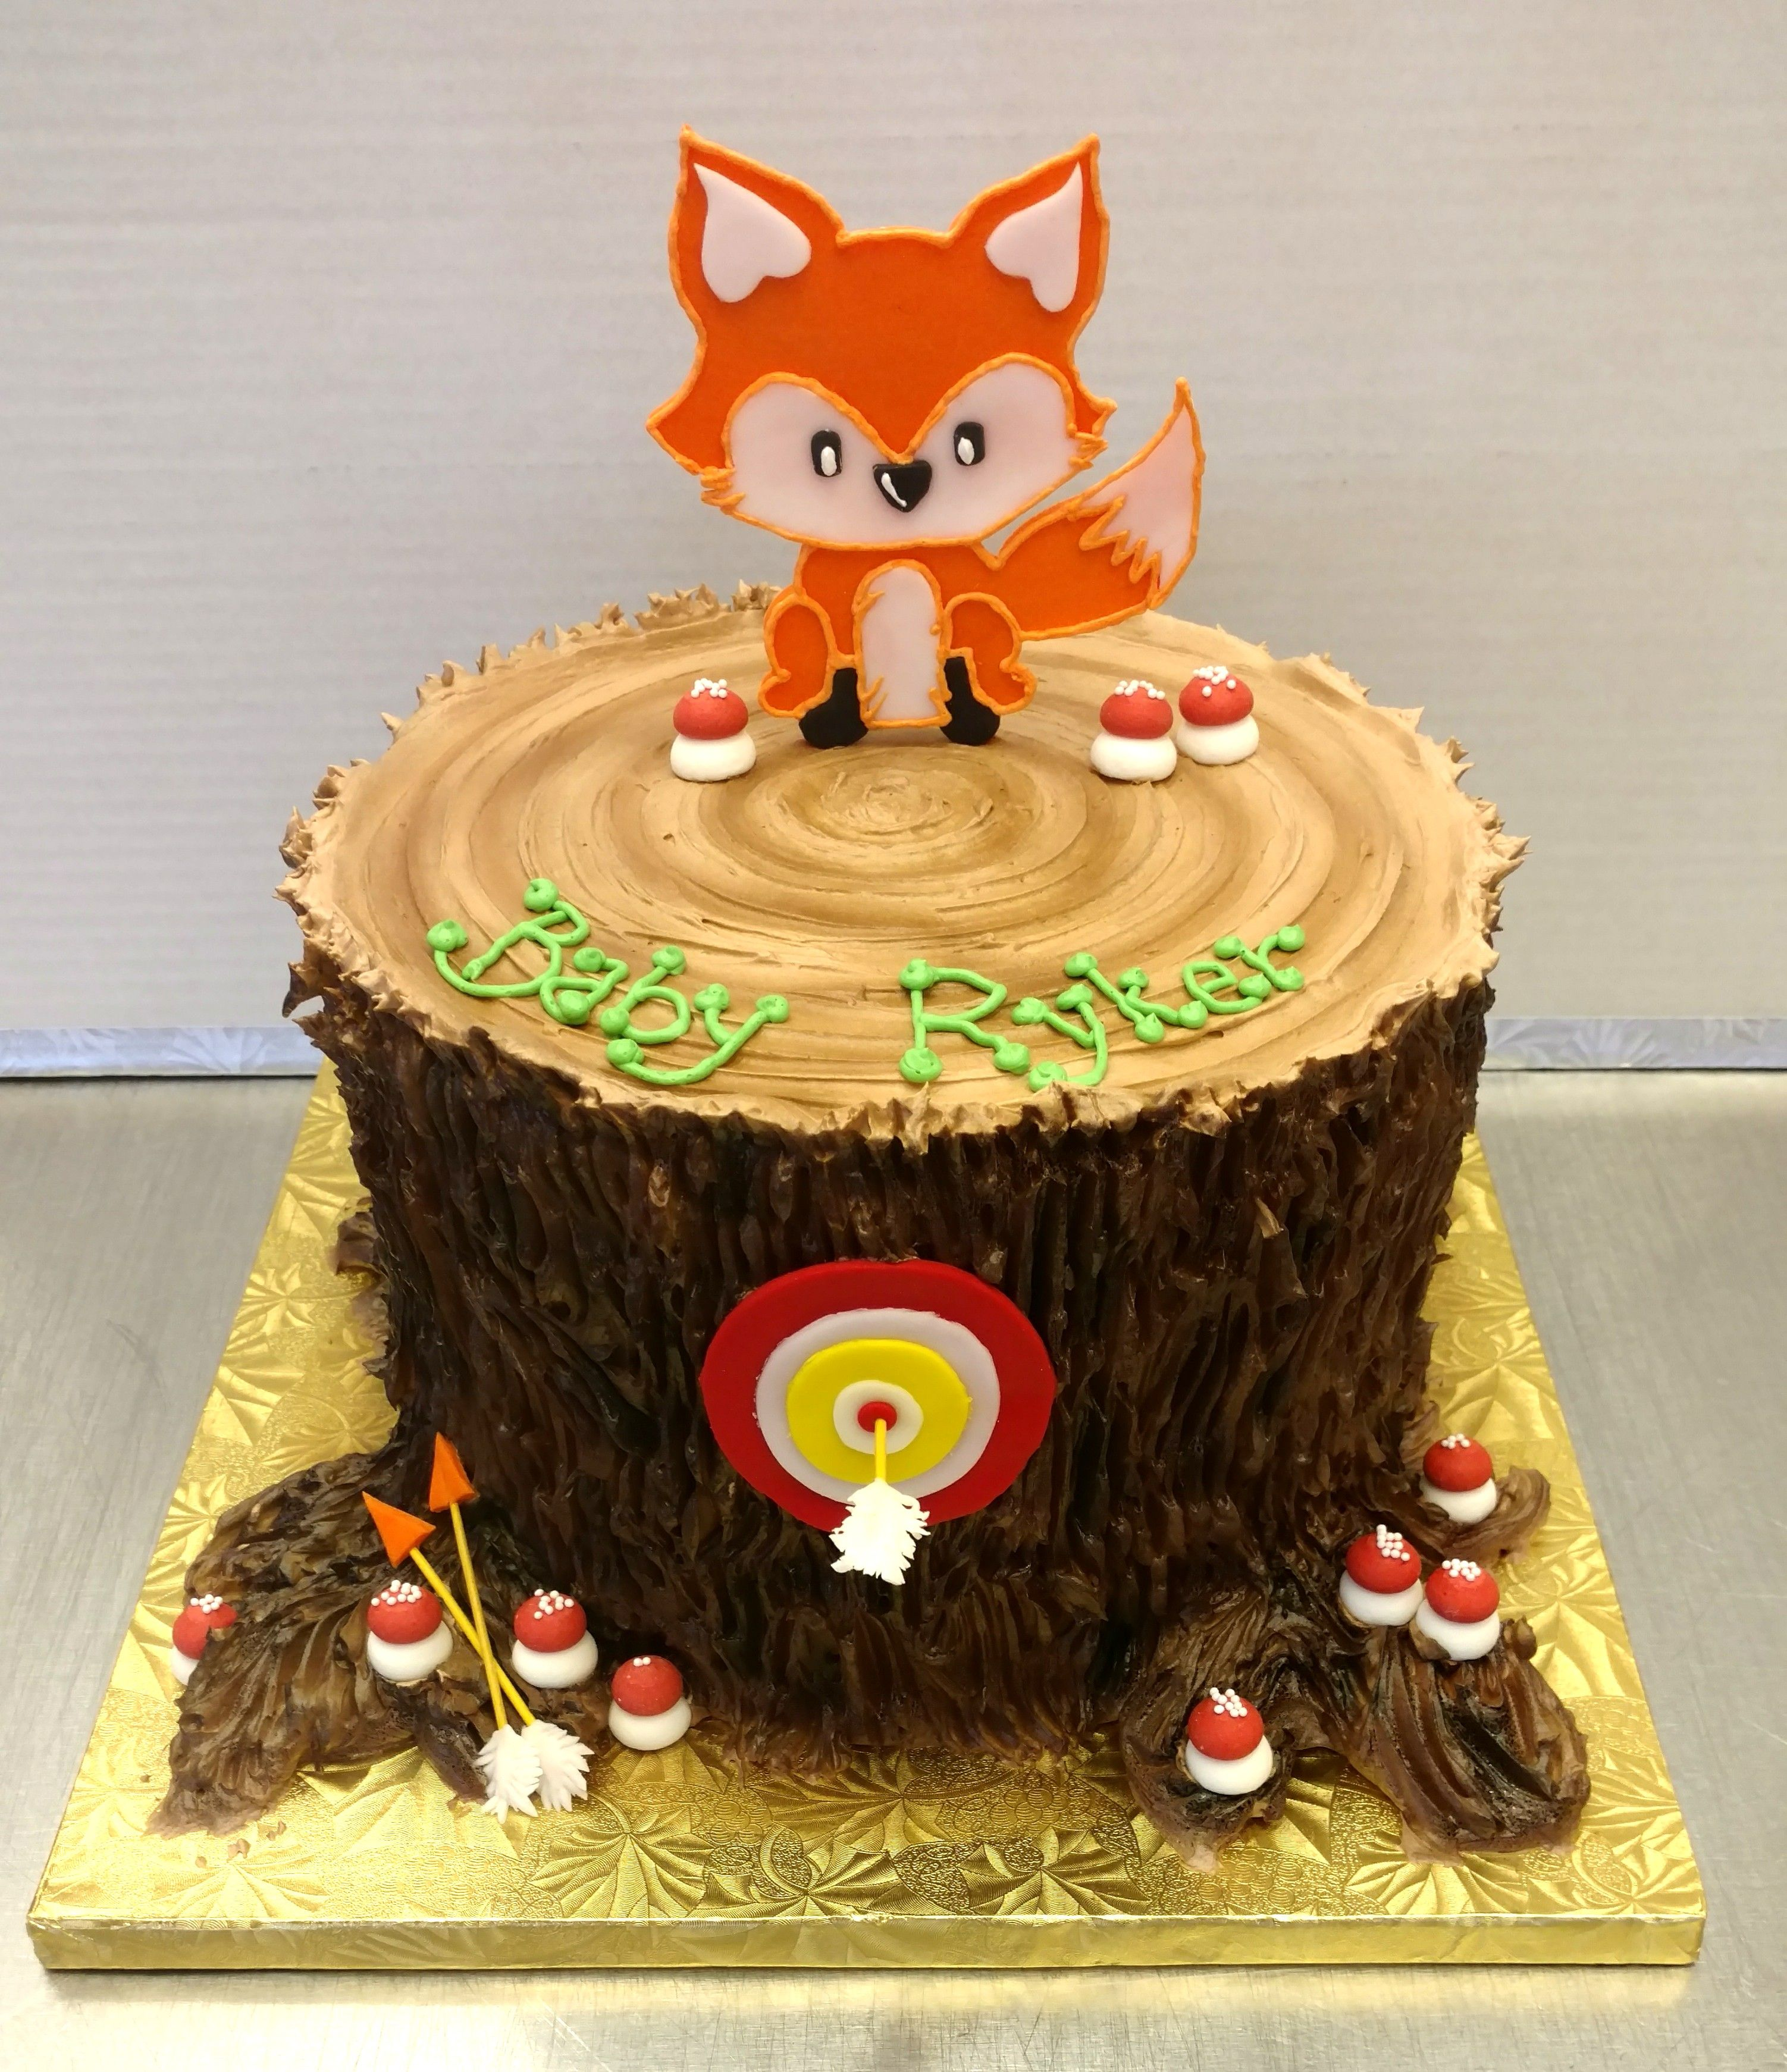 The Cutest Woodland Creature Themed Birthday Cake European Bakery